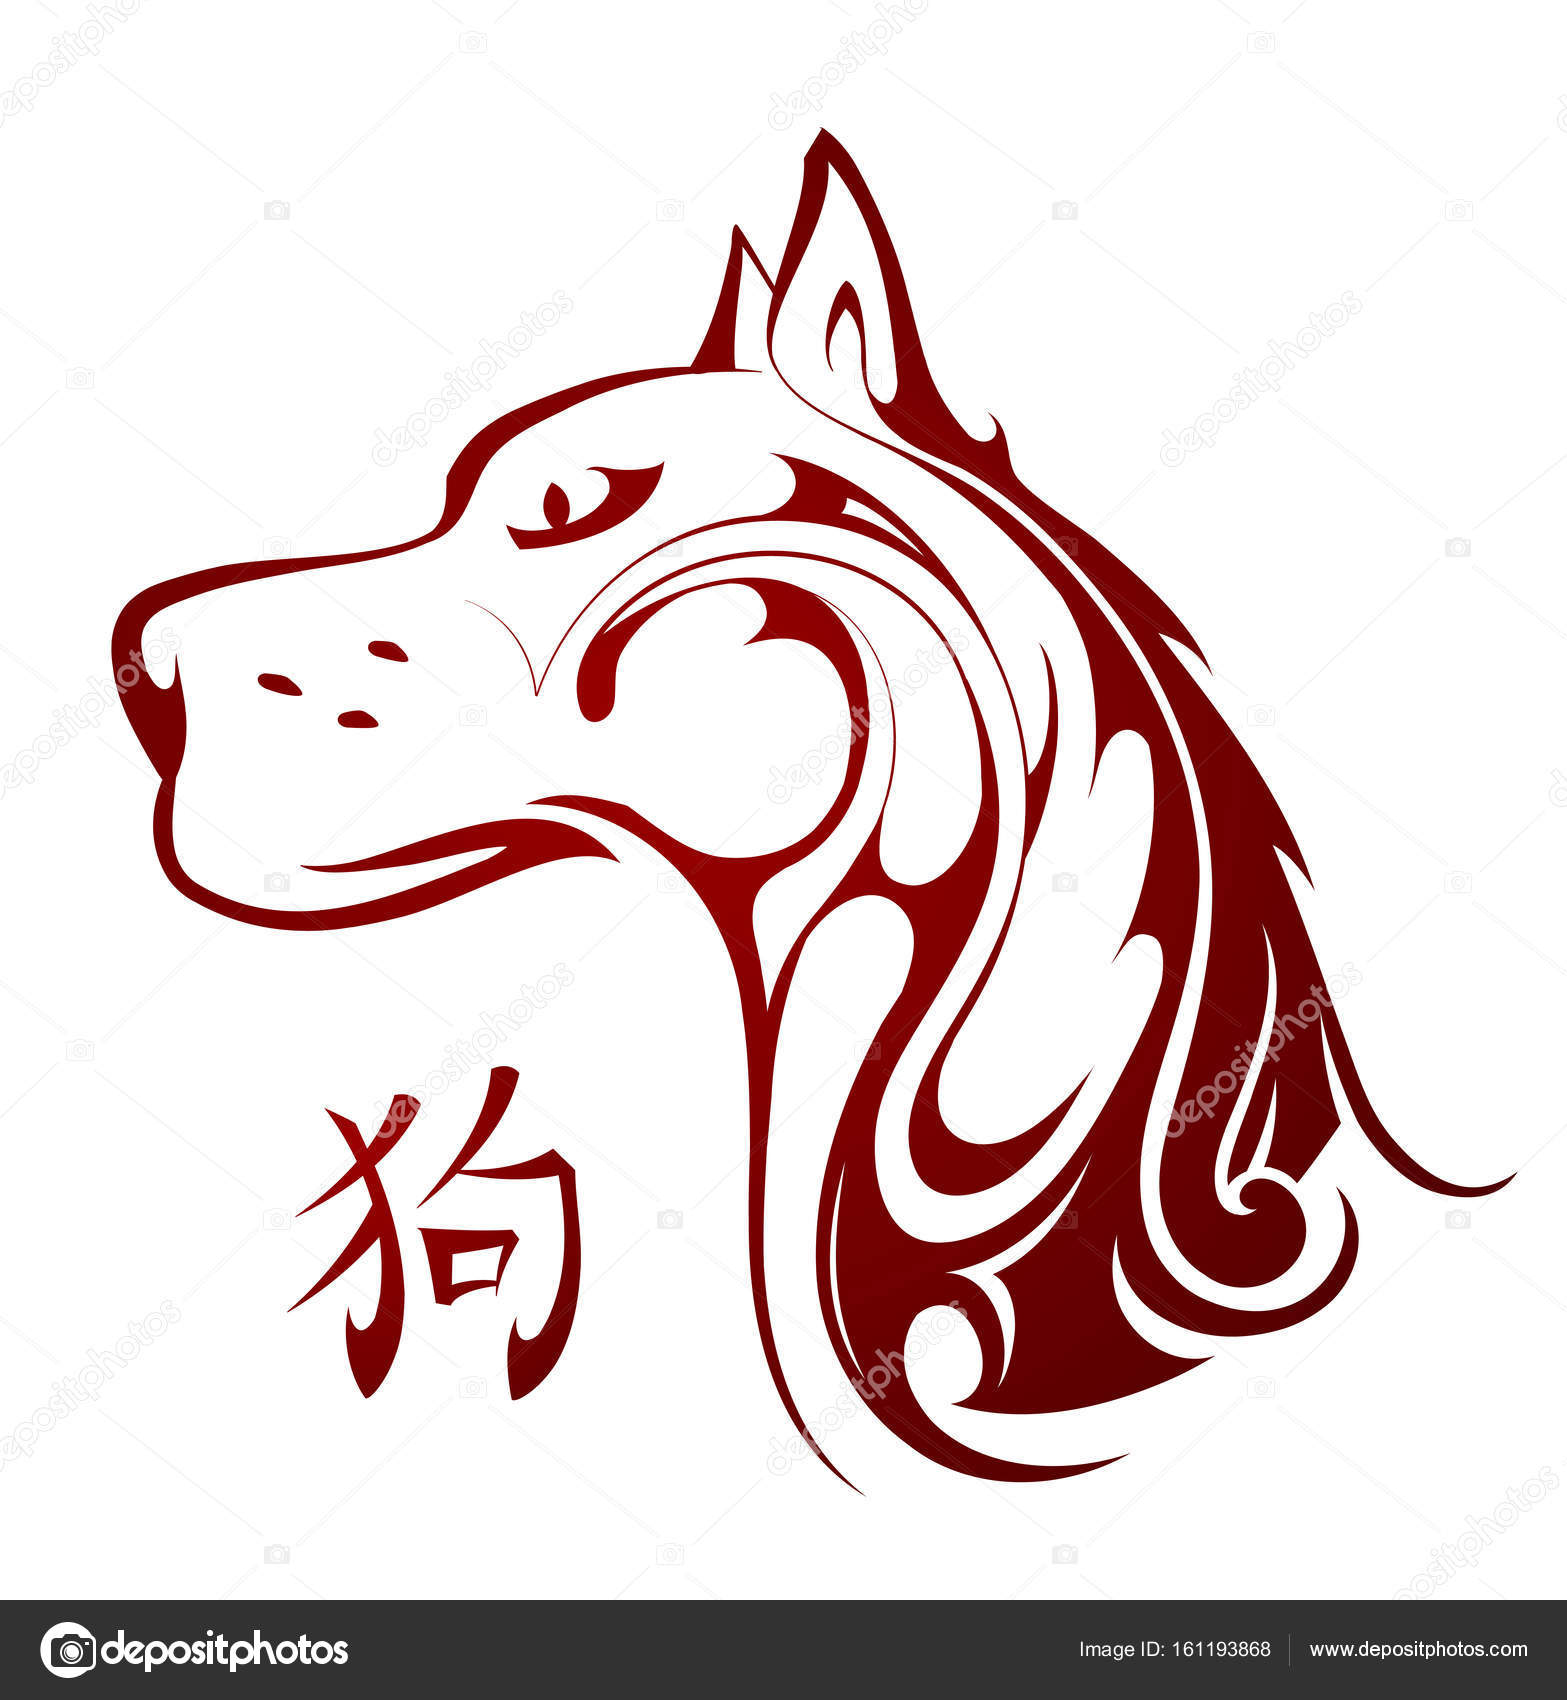 chinese new year 2018 dog horoscope symbol stock vector 161193868 - Chinese New Year Symbols